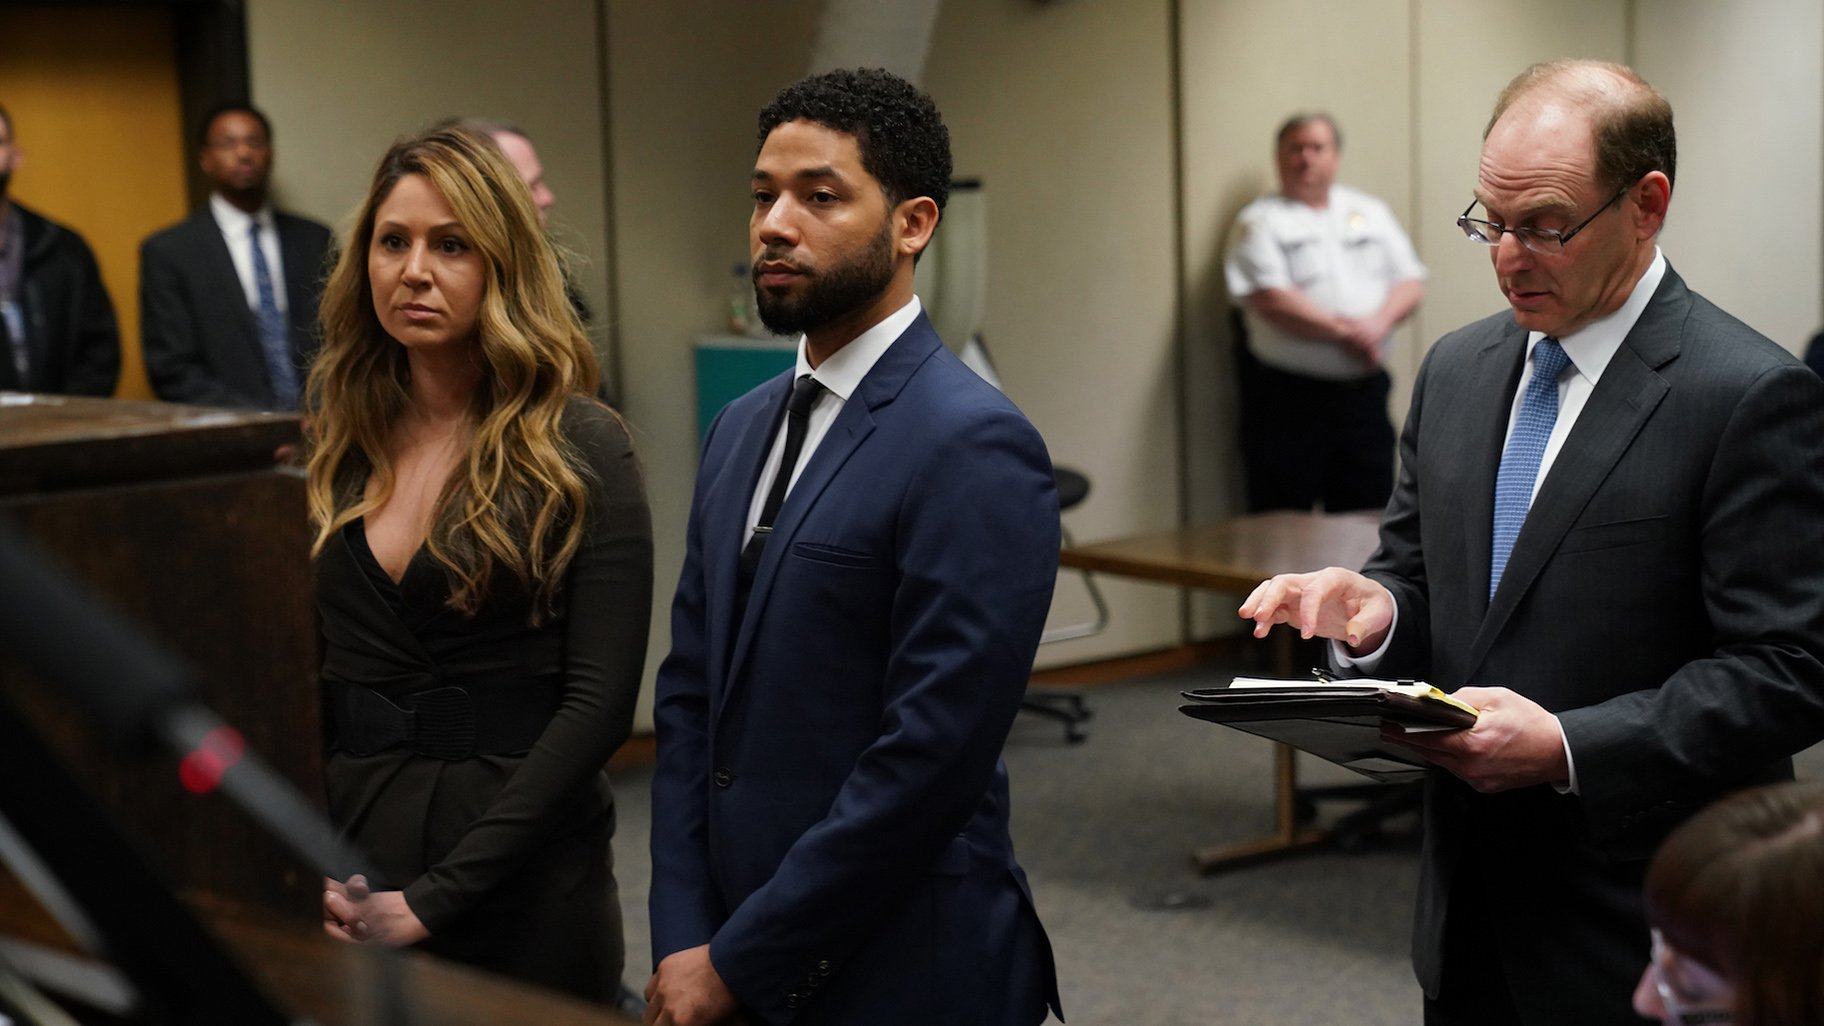 Judge Won't Reconsider Special Prosecutor Ruling in Jussie